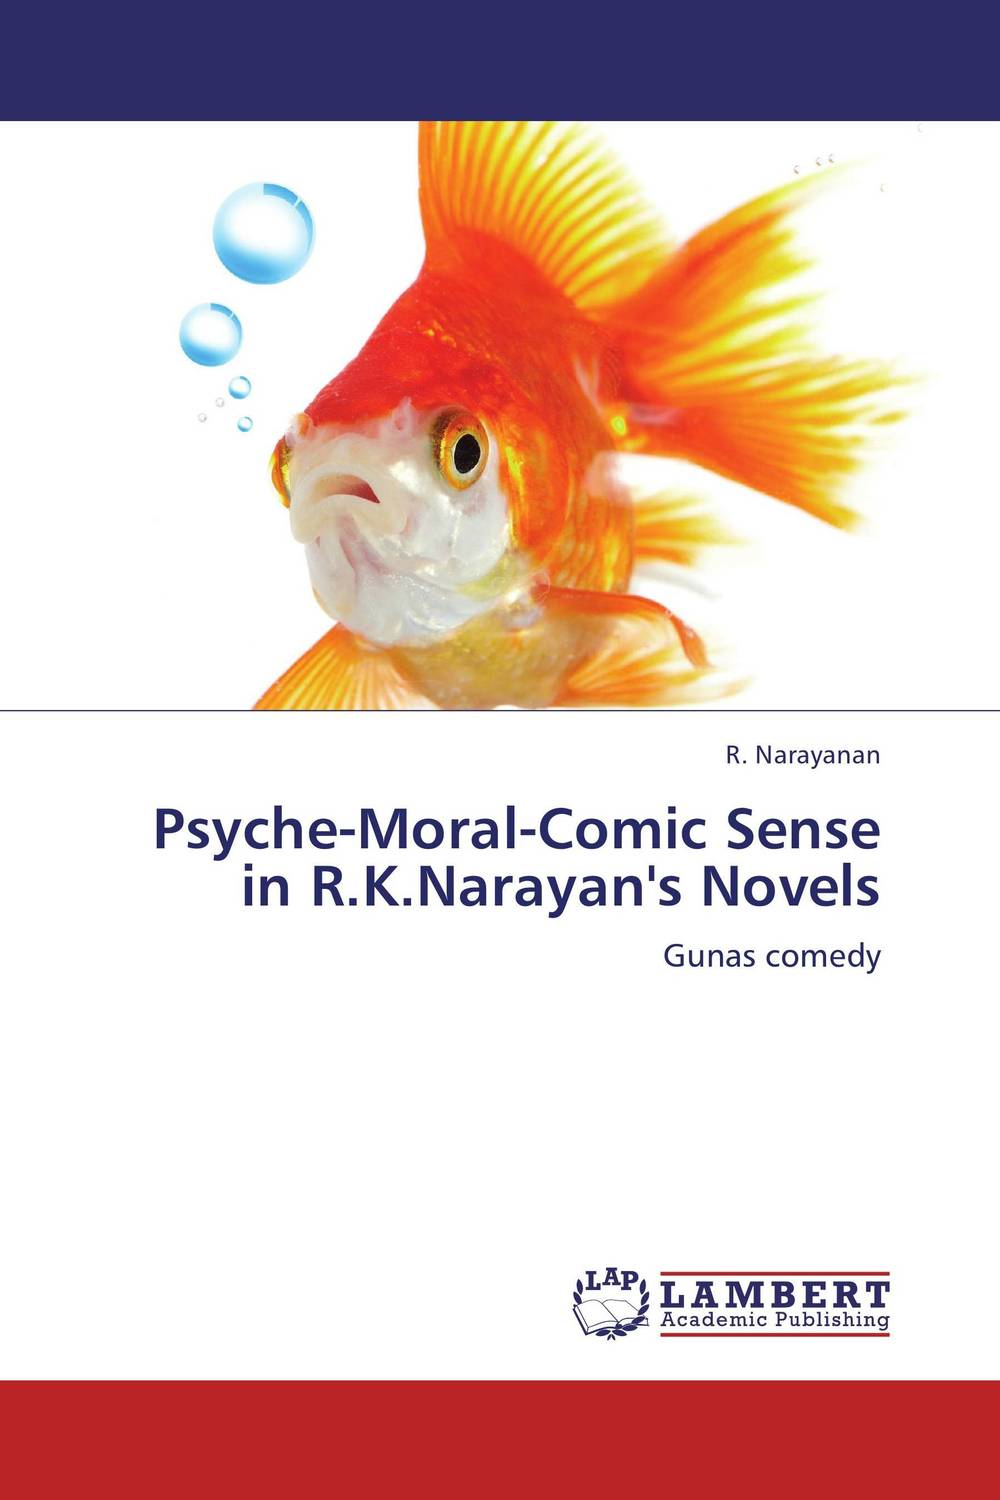 Psyche-Moral-Comic Sense in R.K.Narayan's Novels addison wiggin endless money the moral hazards of socialism